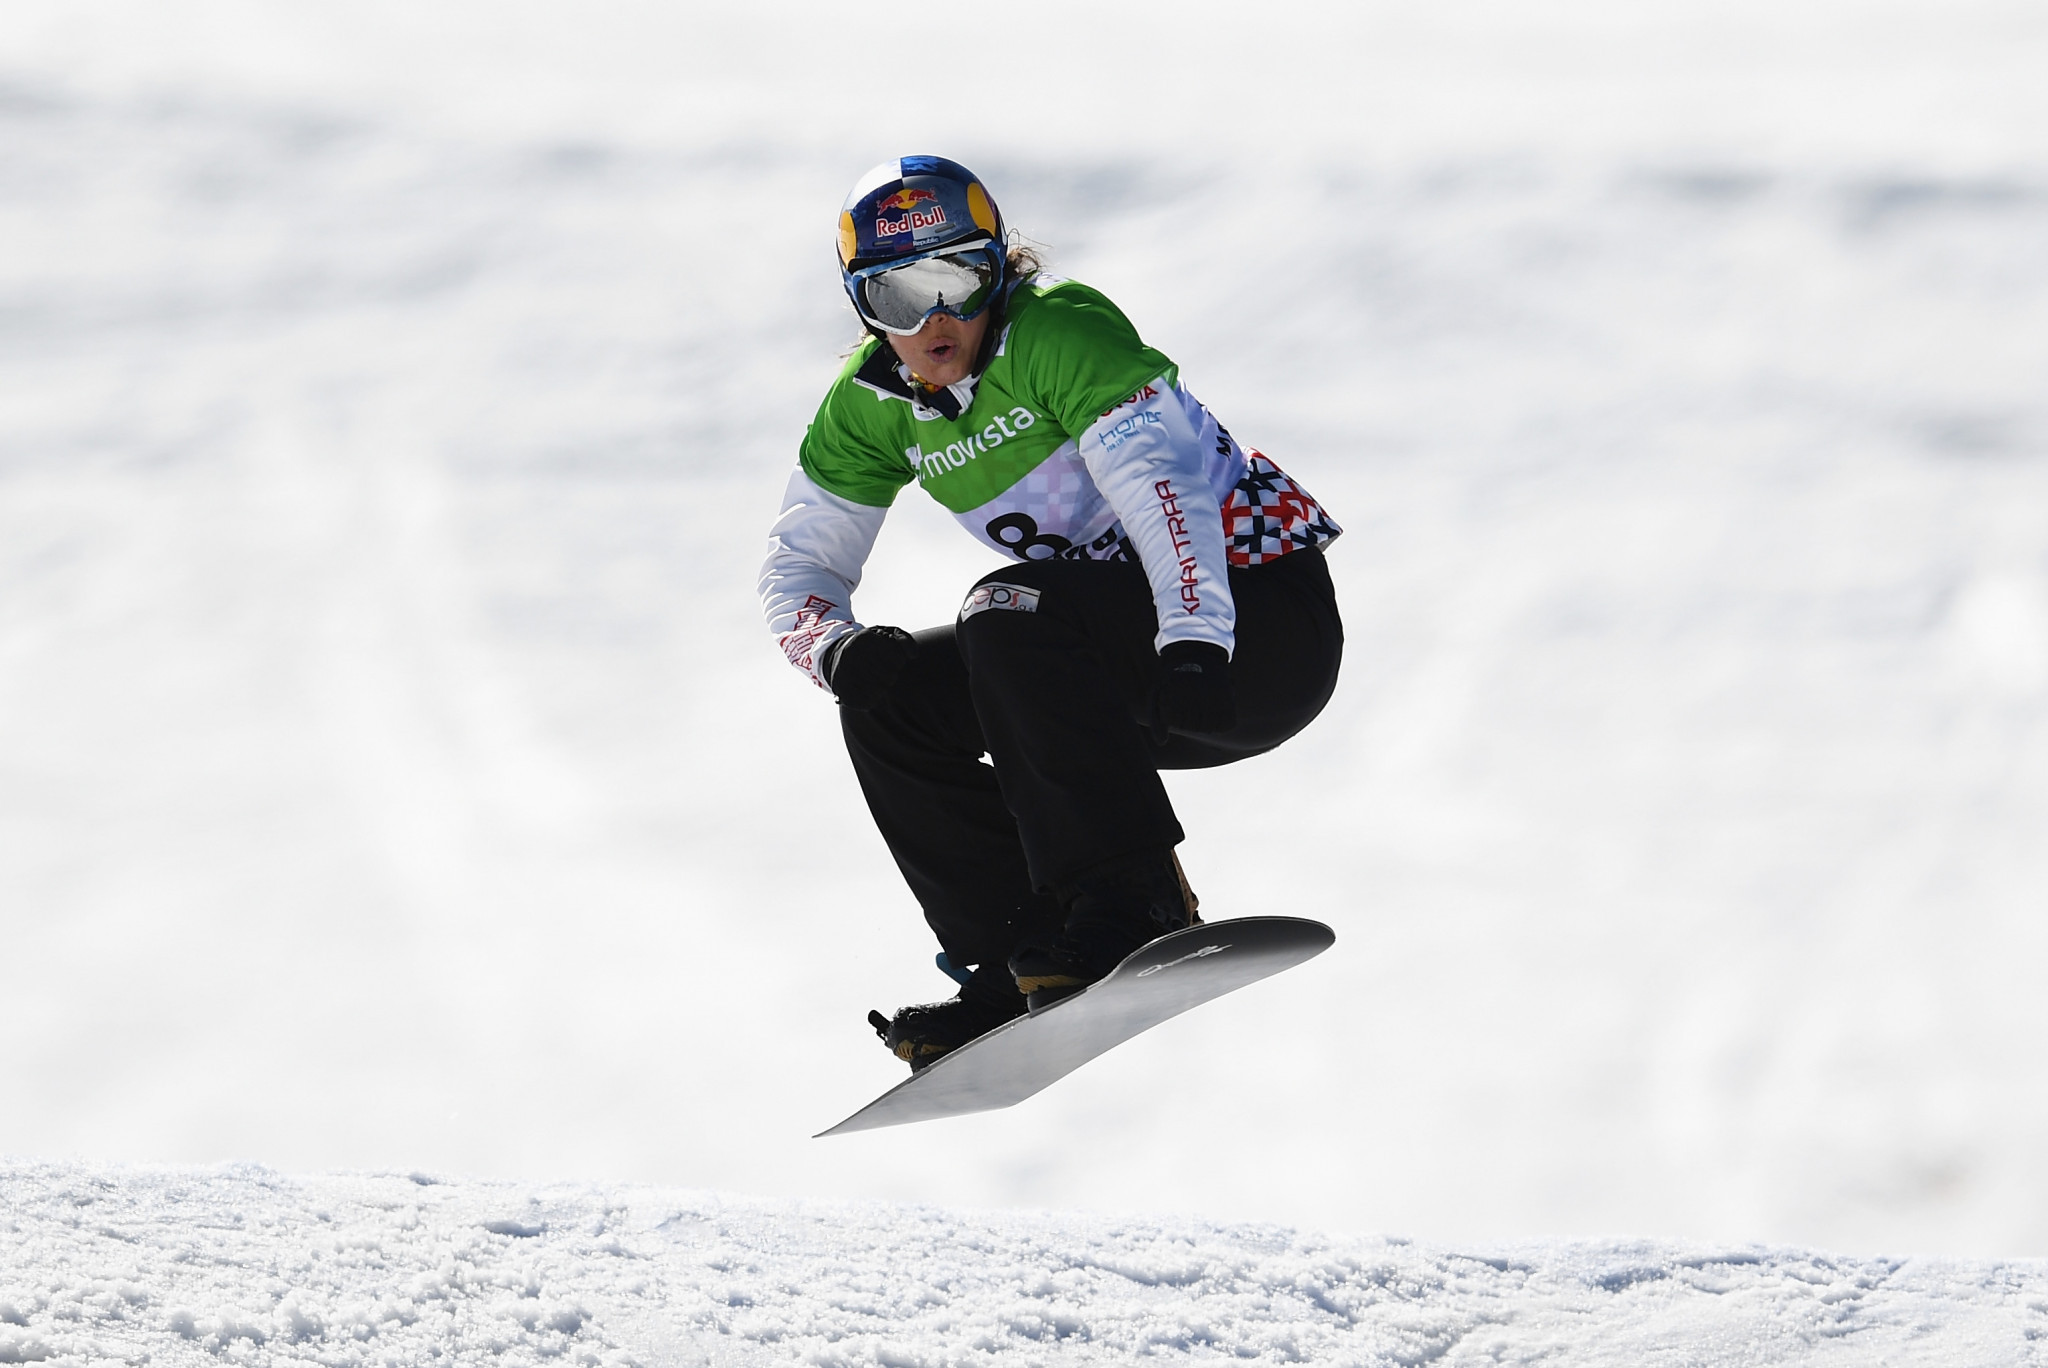 Samková and defending champion Hämmerle Snowboard Cross World Cup winners in Italy